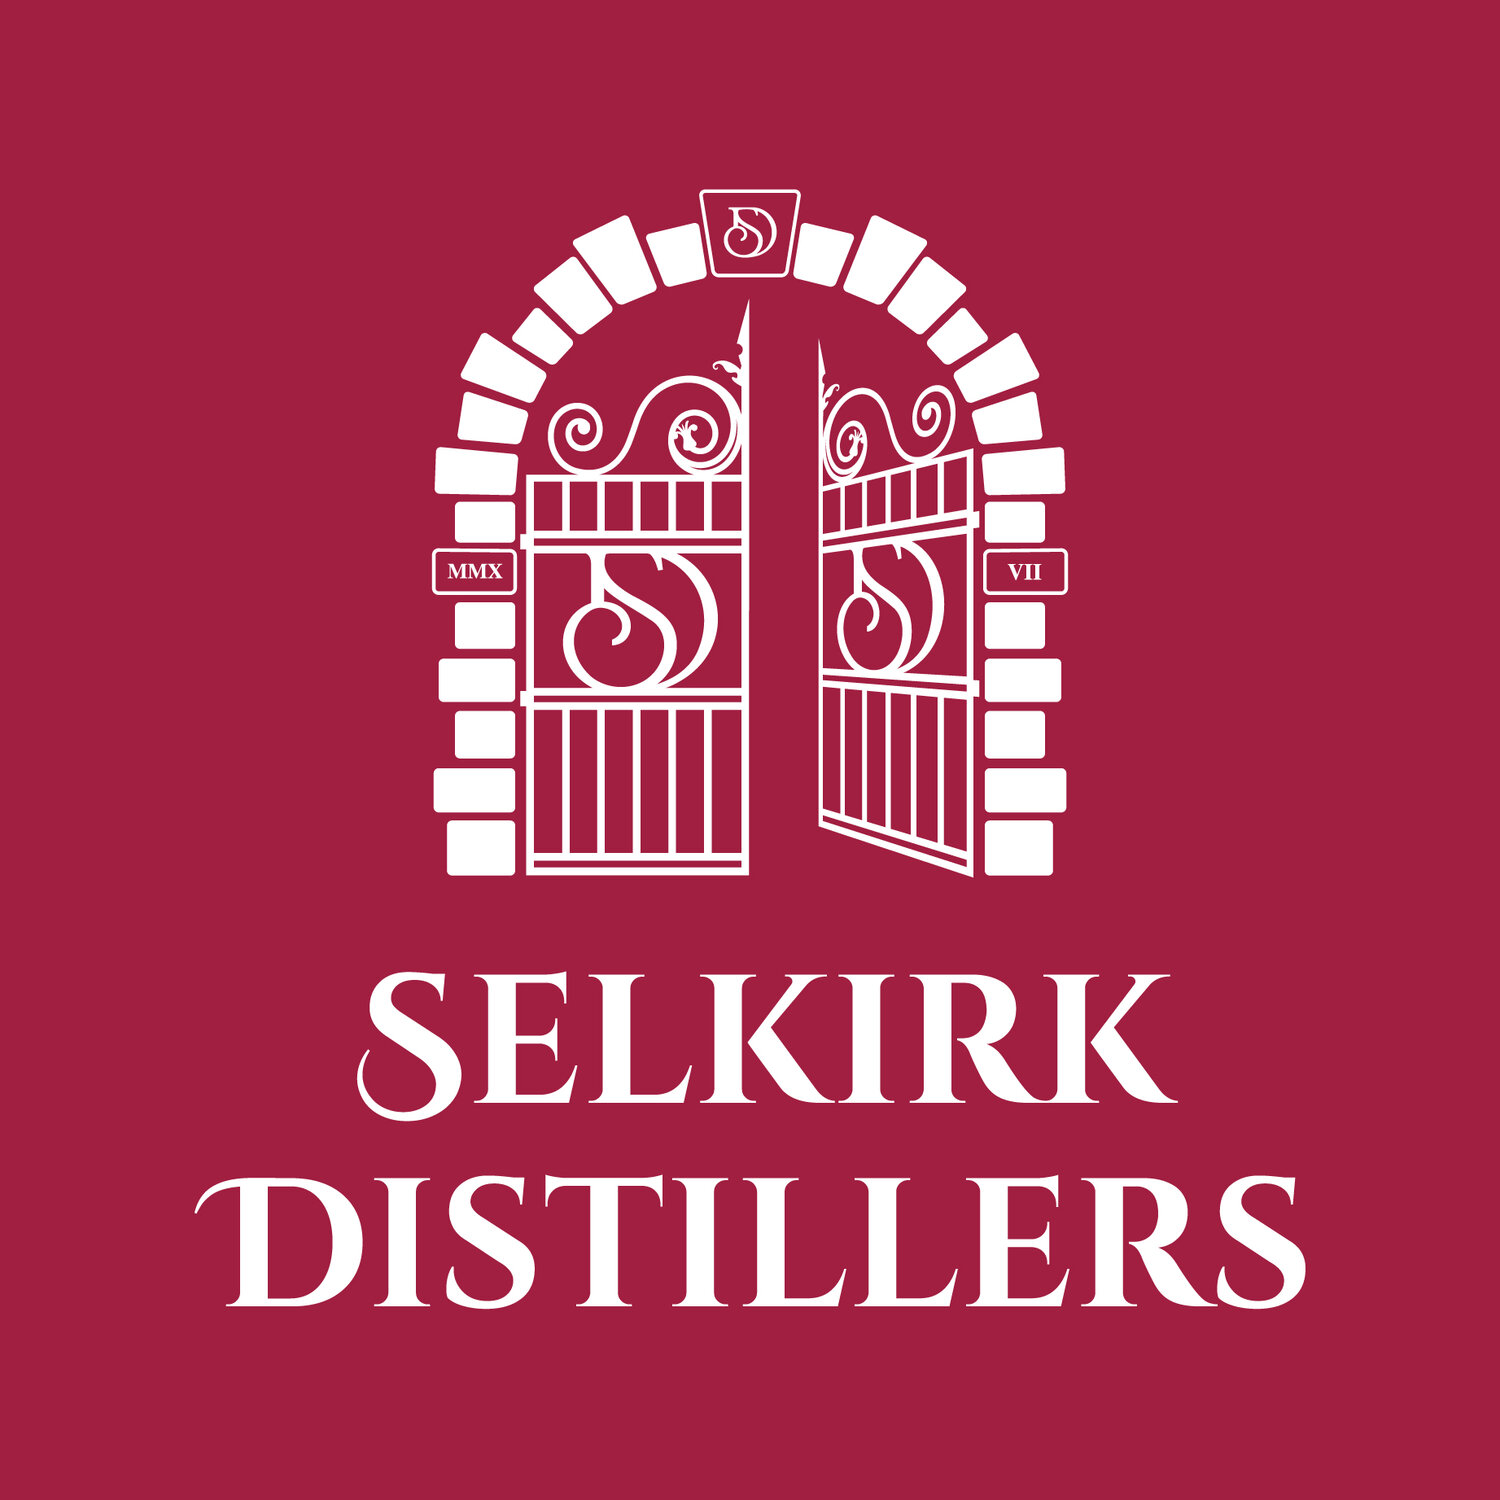 Selkirk Distillers Ltd